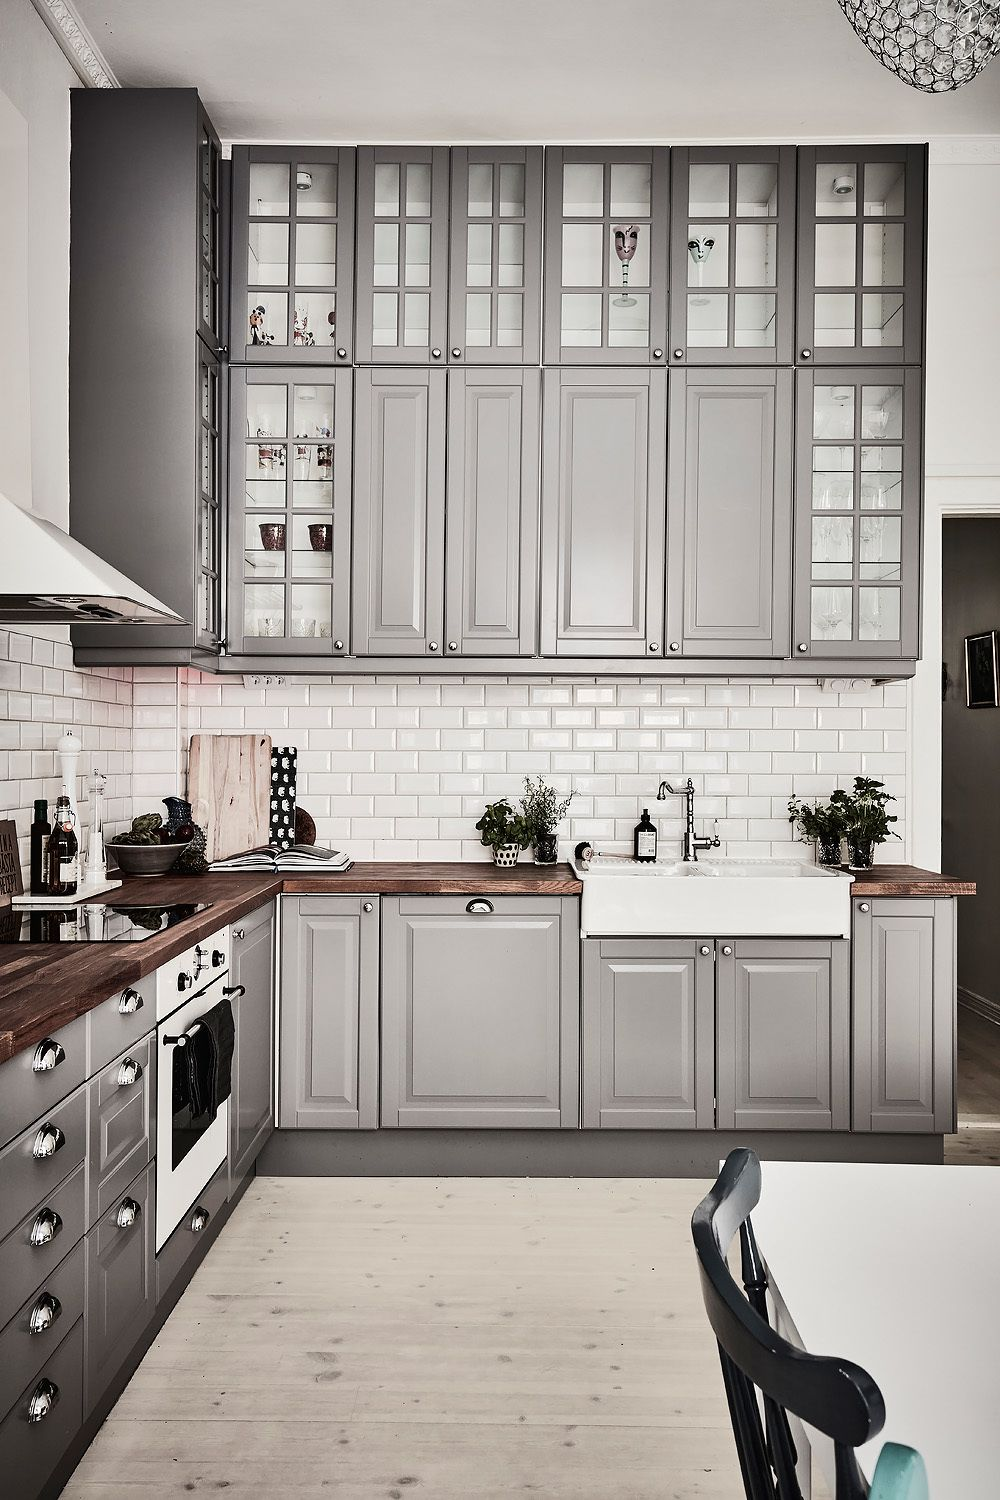 Inspiring Kitchens You Wont Believe Are IKEA Decorating Tips - Grey kitchen cabinets with light floors